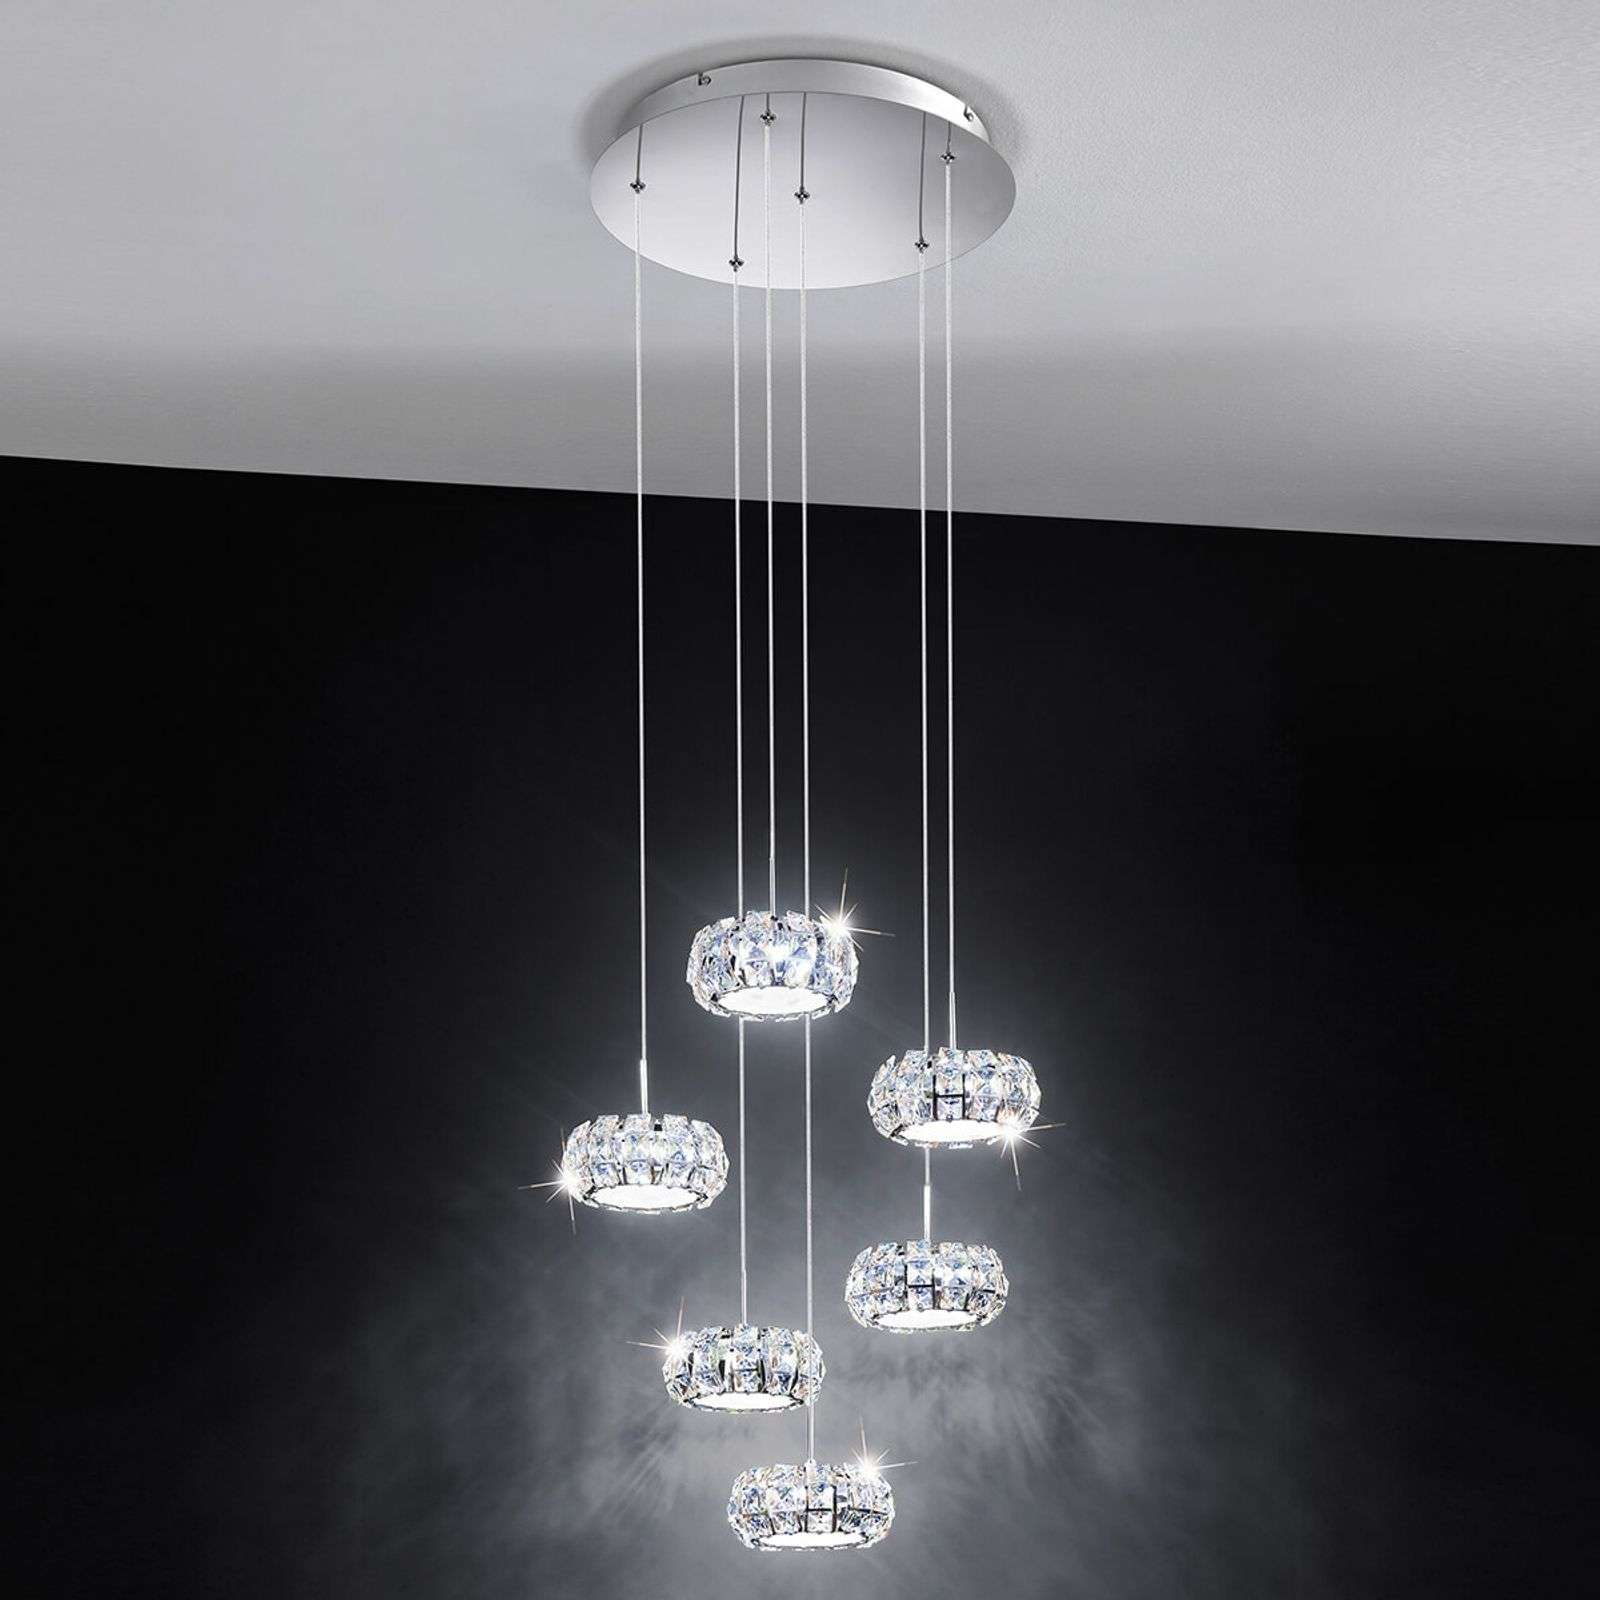 Suspension LED originale Corliano à 6 lampes